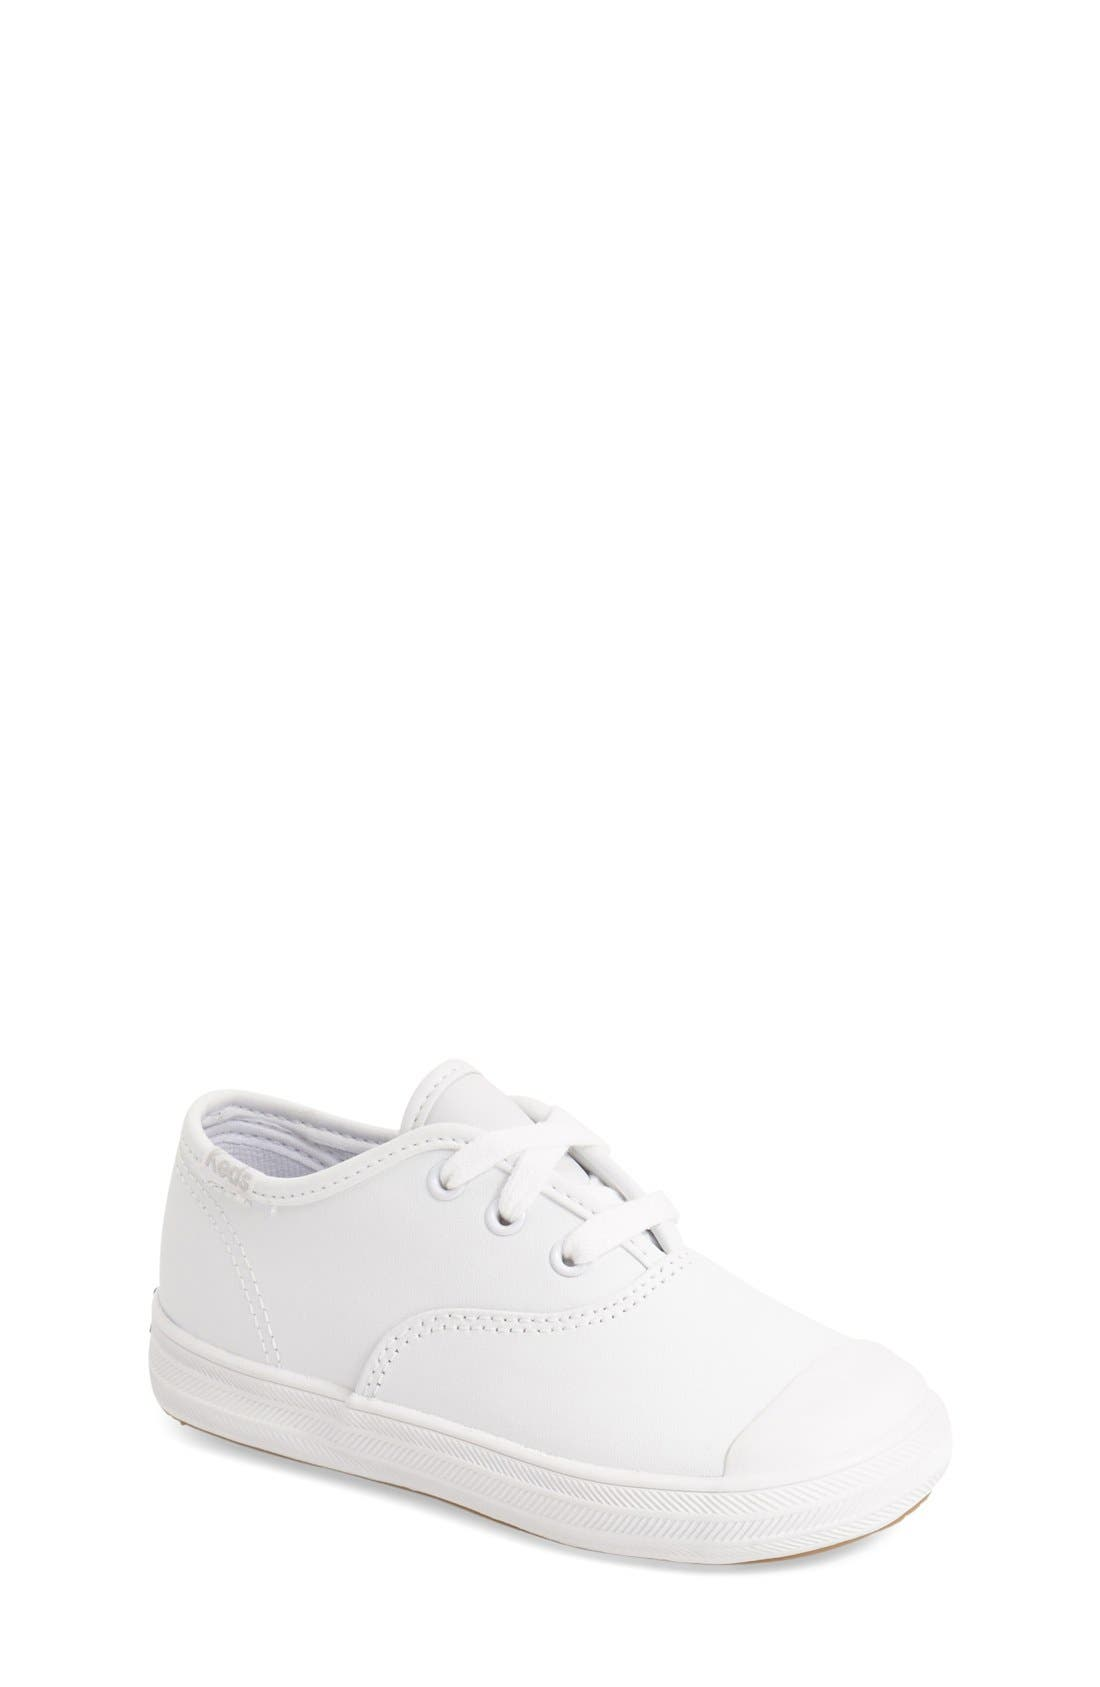 'Champion' Sneaker,                             Main thumbnail 1, color,                             WHITE LEATHER